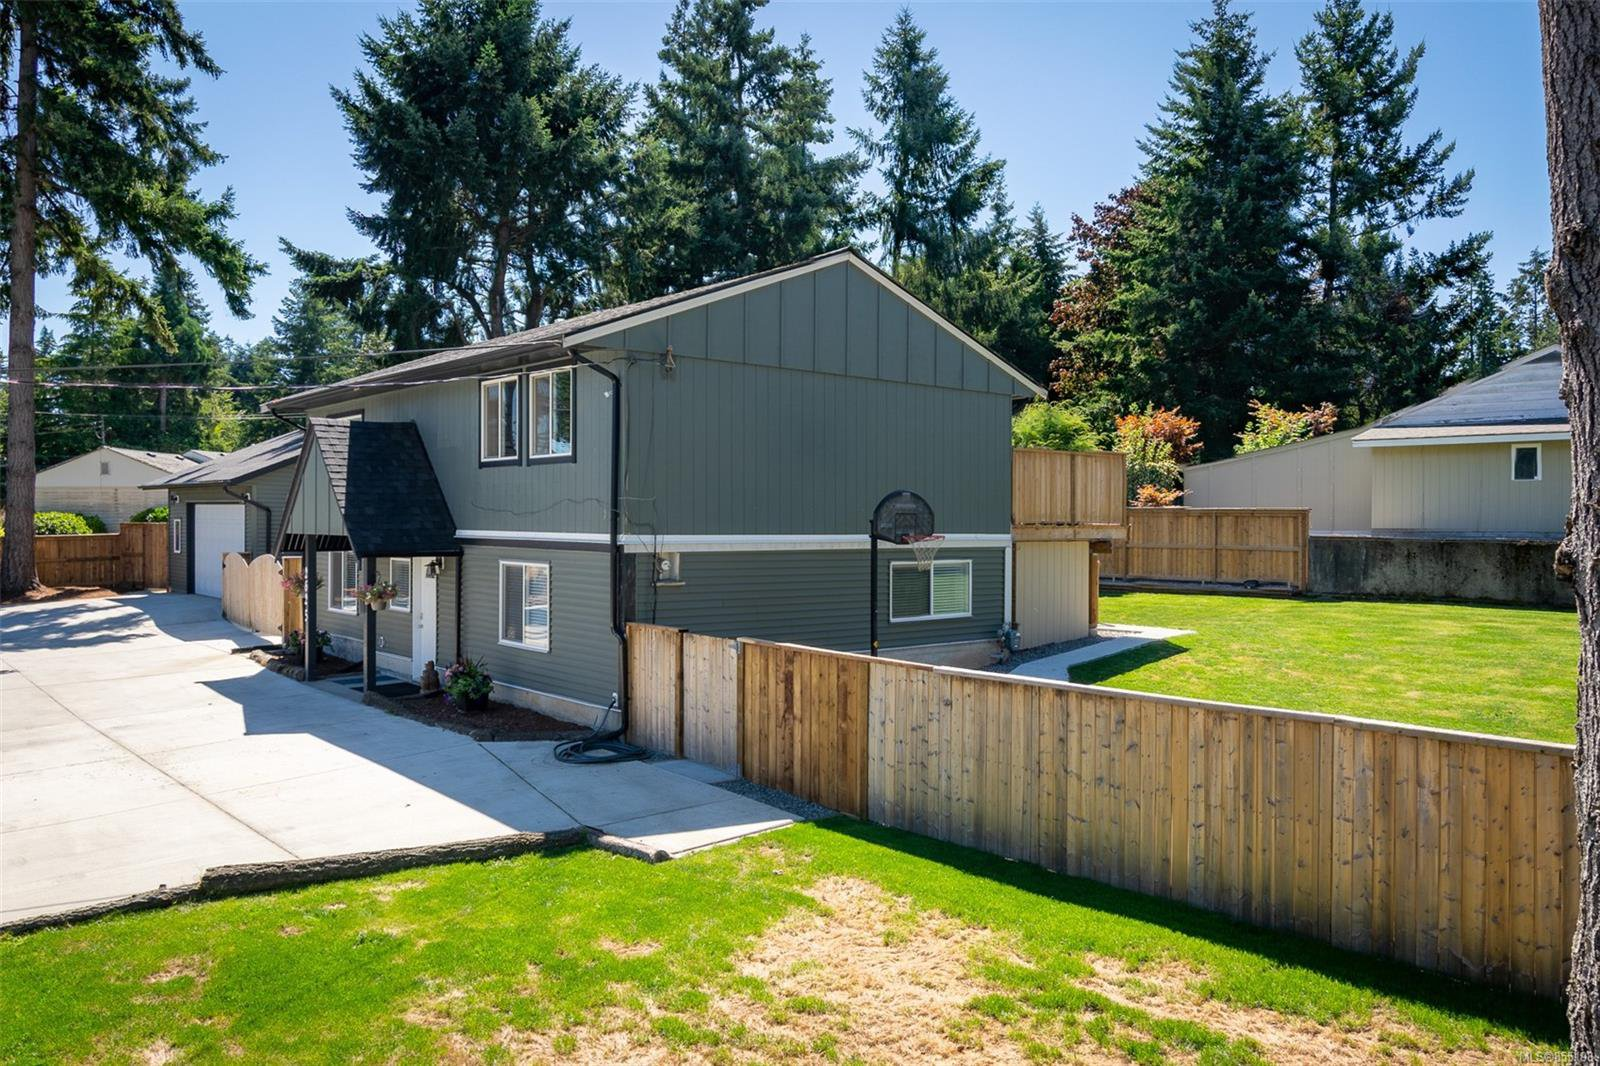 Main Photo: 2625 Labieux Rd in : Na Diver Lake Single Family Detached for sale (Nanaimo)  : MLS®# 855198